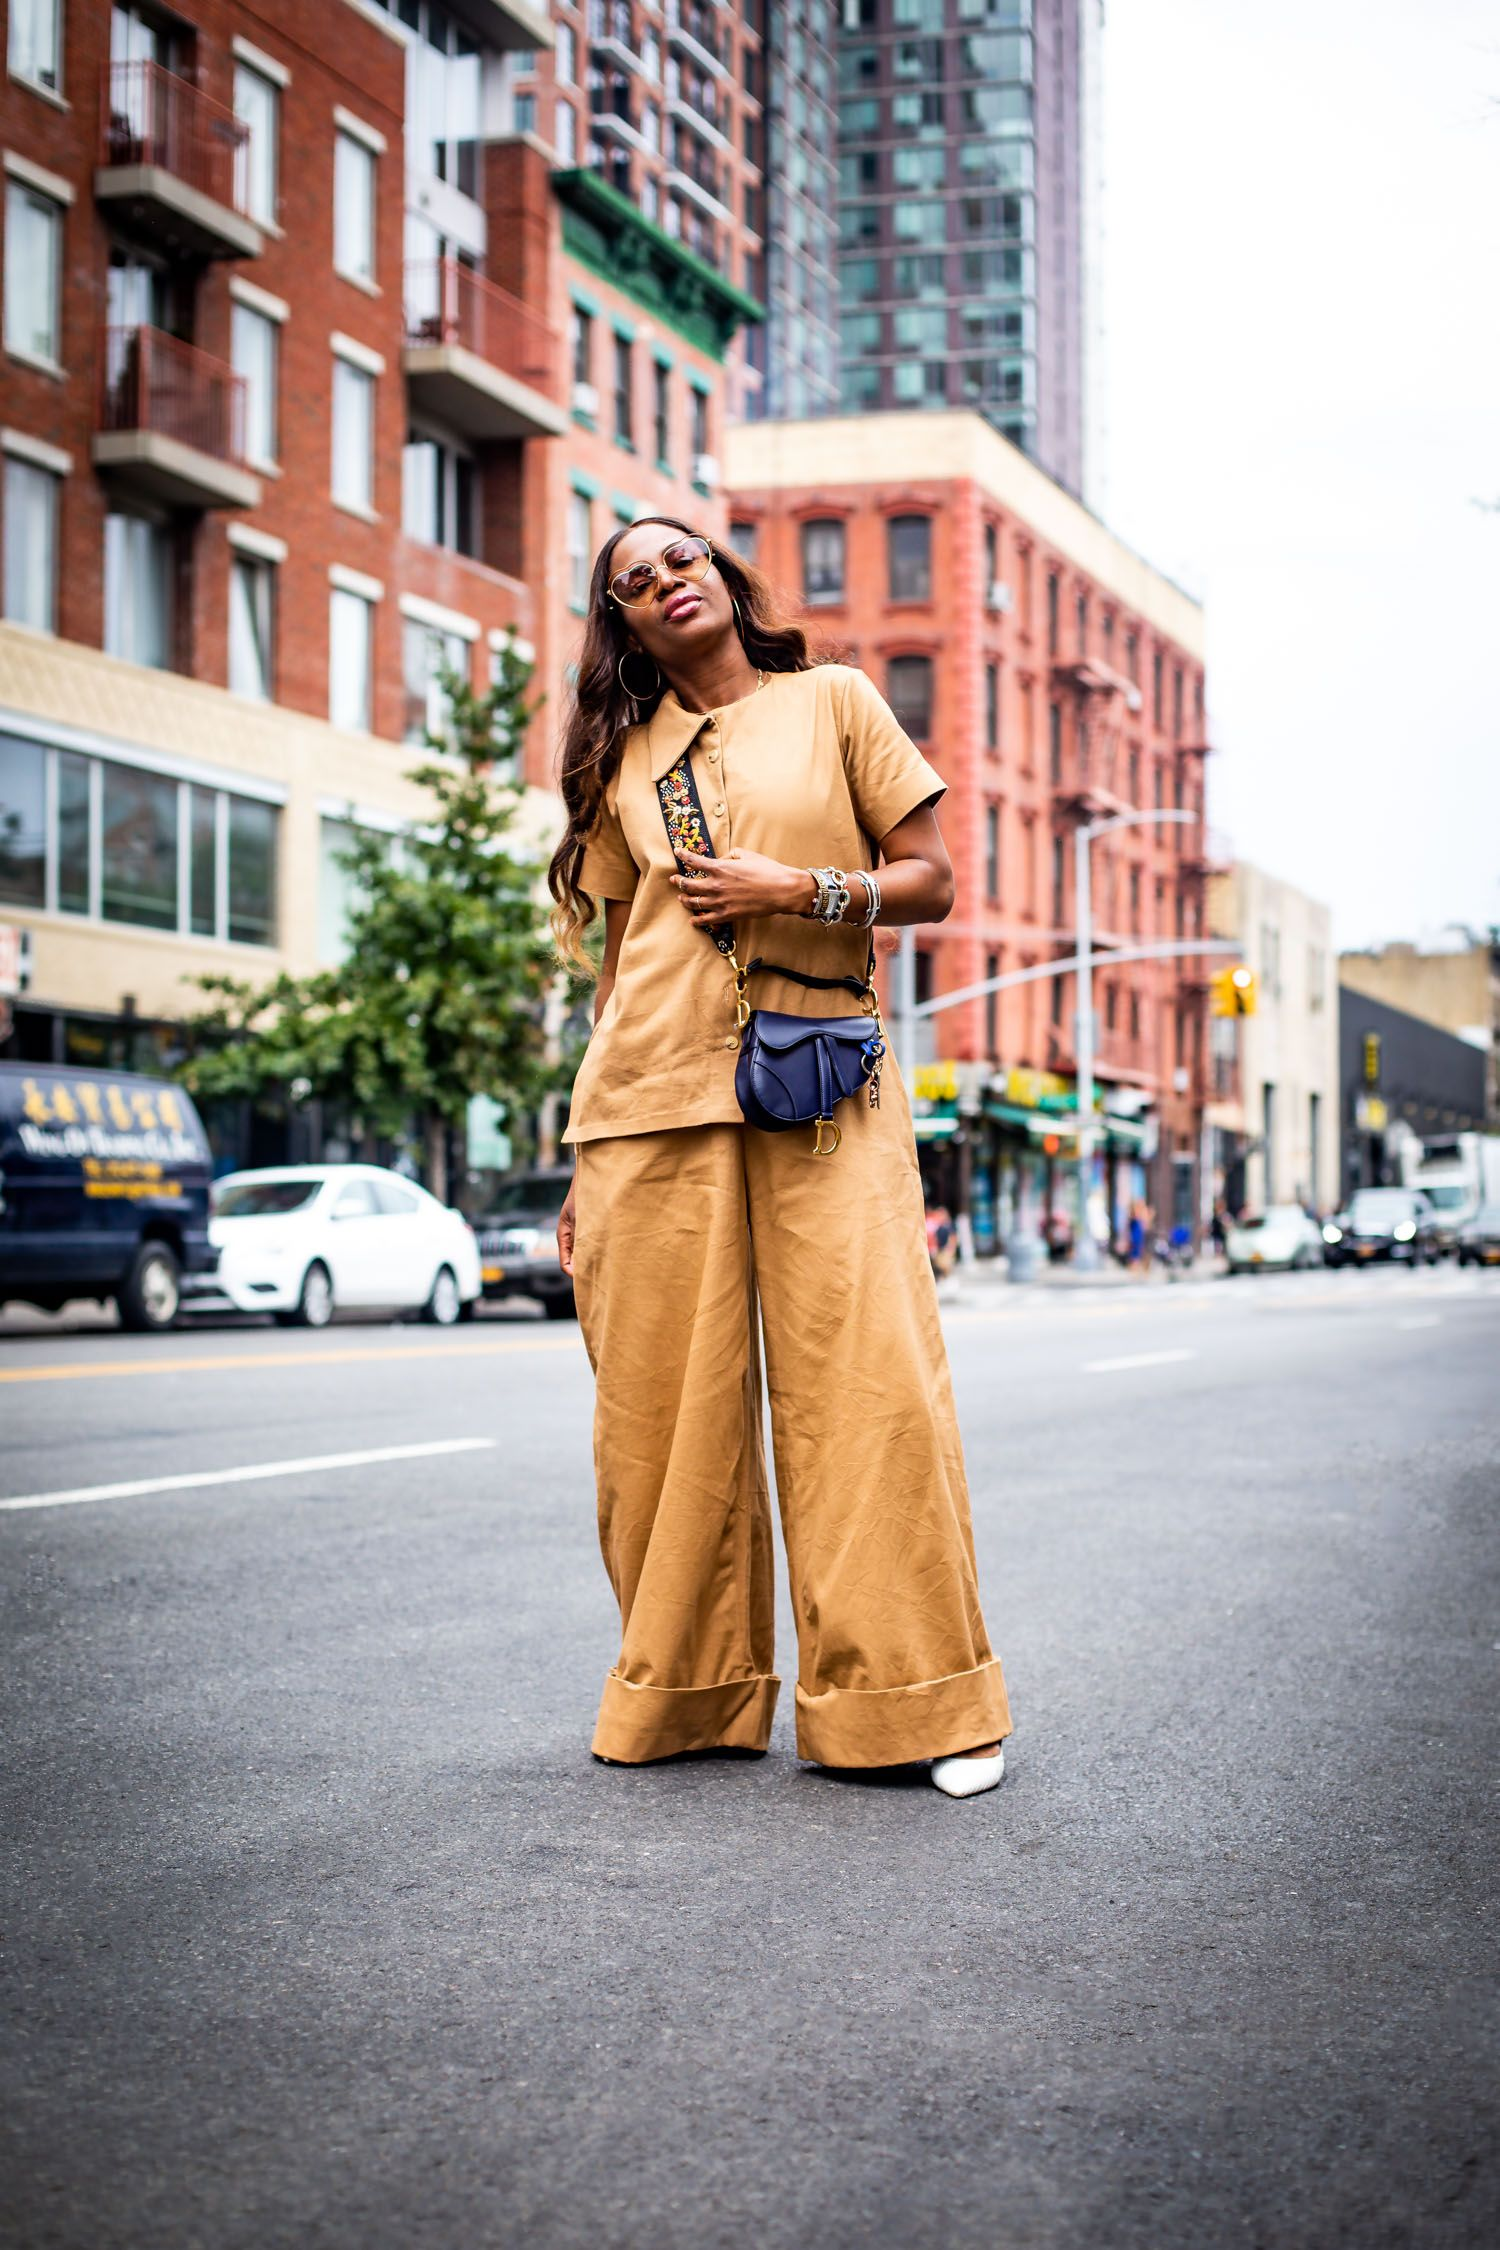 eb1b0e16502 3 tips on how to look chic in a utility jumpsuit. Atlanta fashion and  lifestyle blogger Monica Awe-Etuk wearing utility jumpsuit by FIA Factory